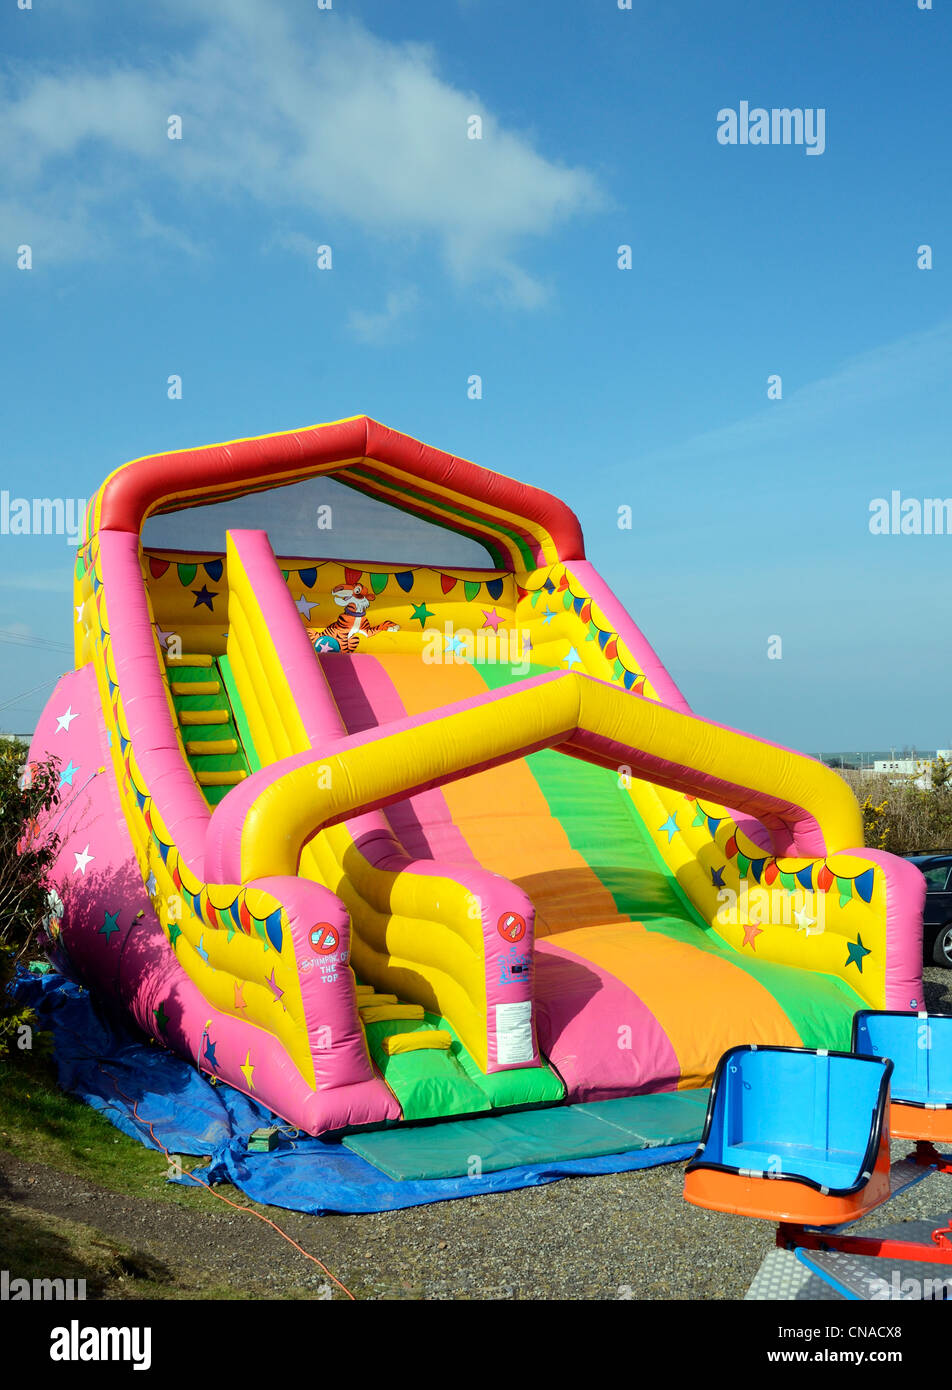 A childrens inflatable slide at a fun fair - Stock Image